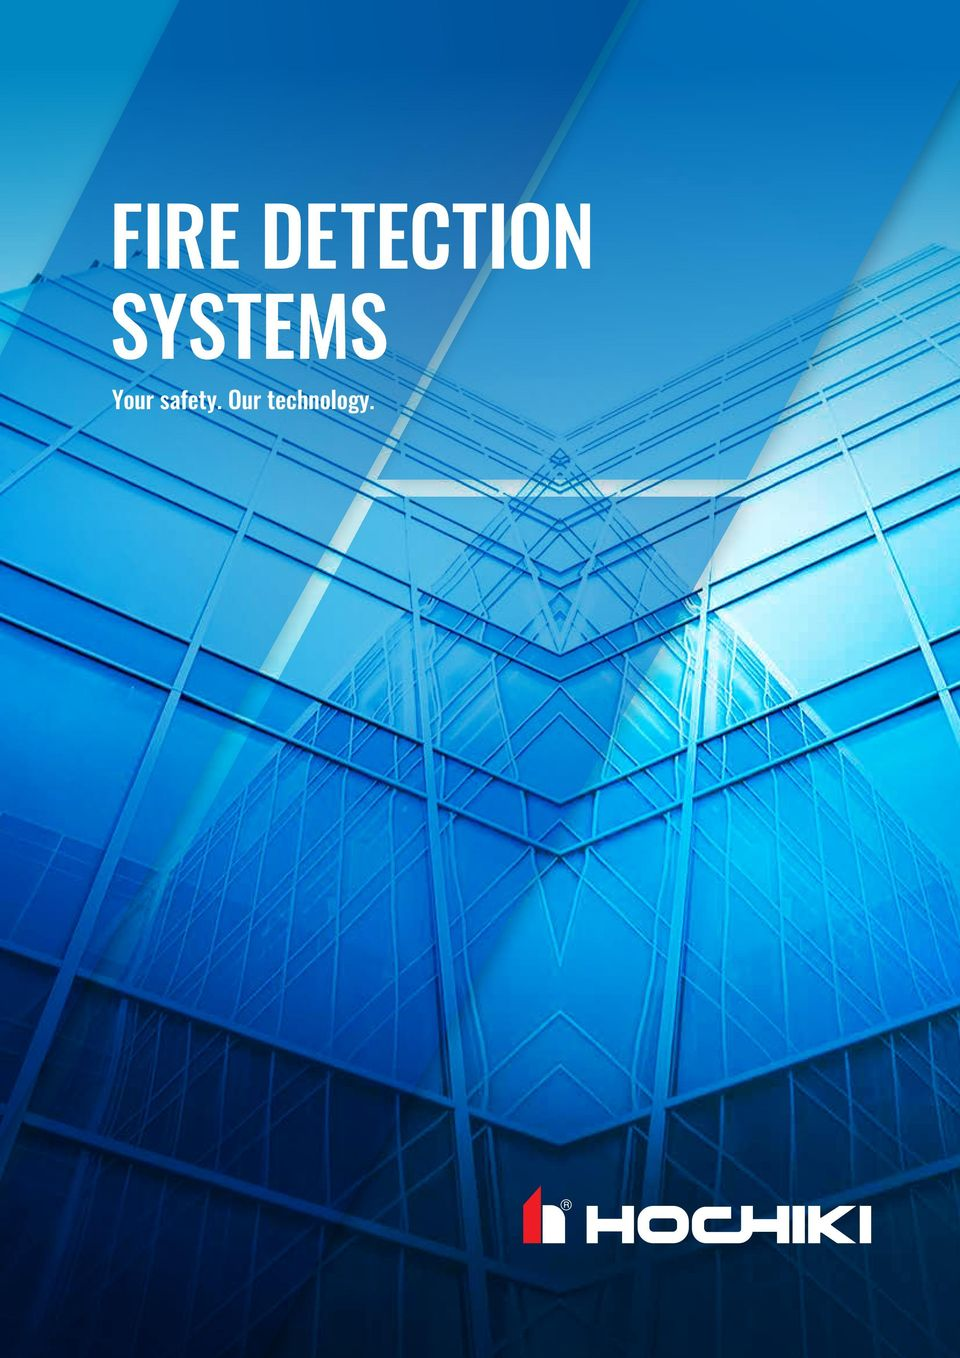 FIRE DETECTION SYSTEMS  Your safety  Our technology  - PDF